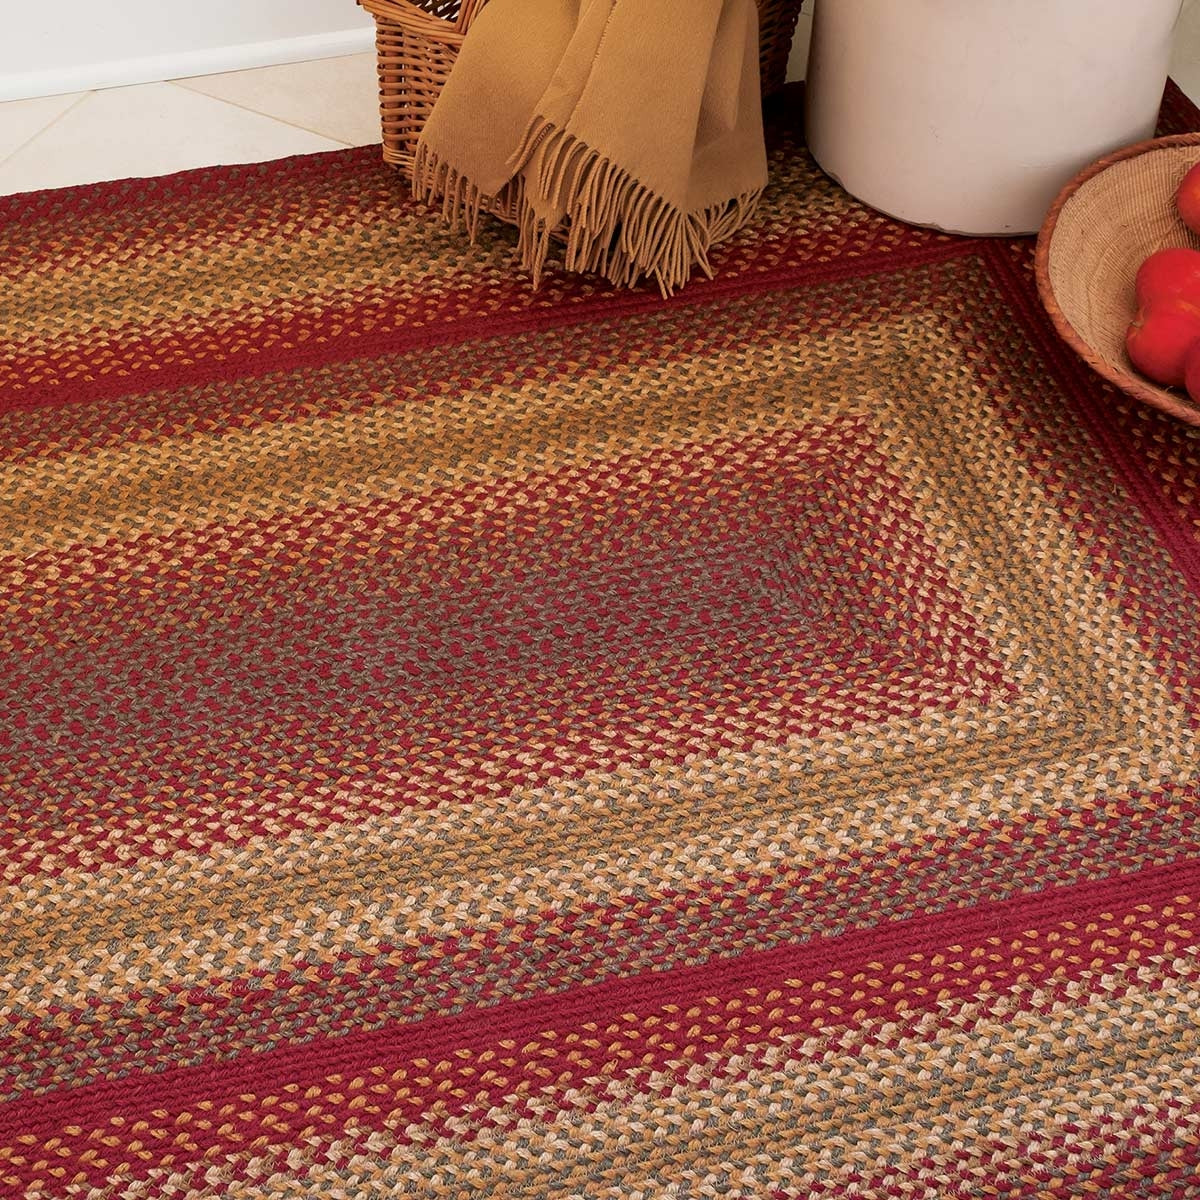 Buy Cider Barn Red Jute Braided Rugs Online Homespice